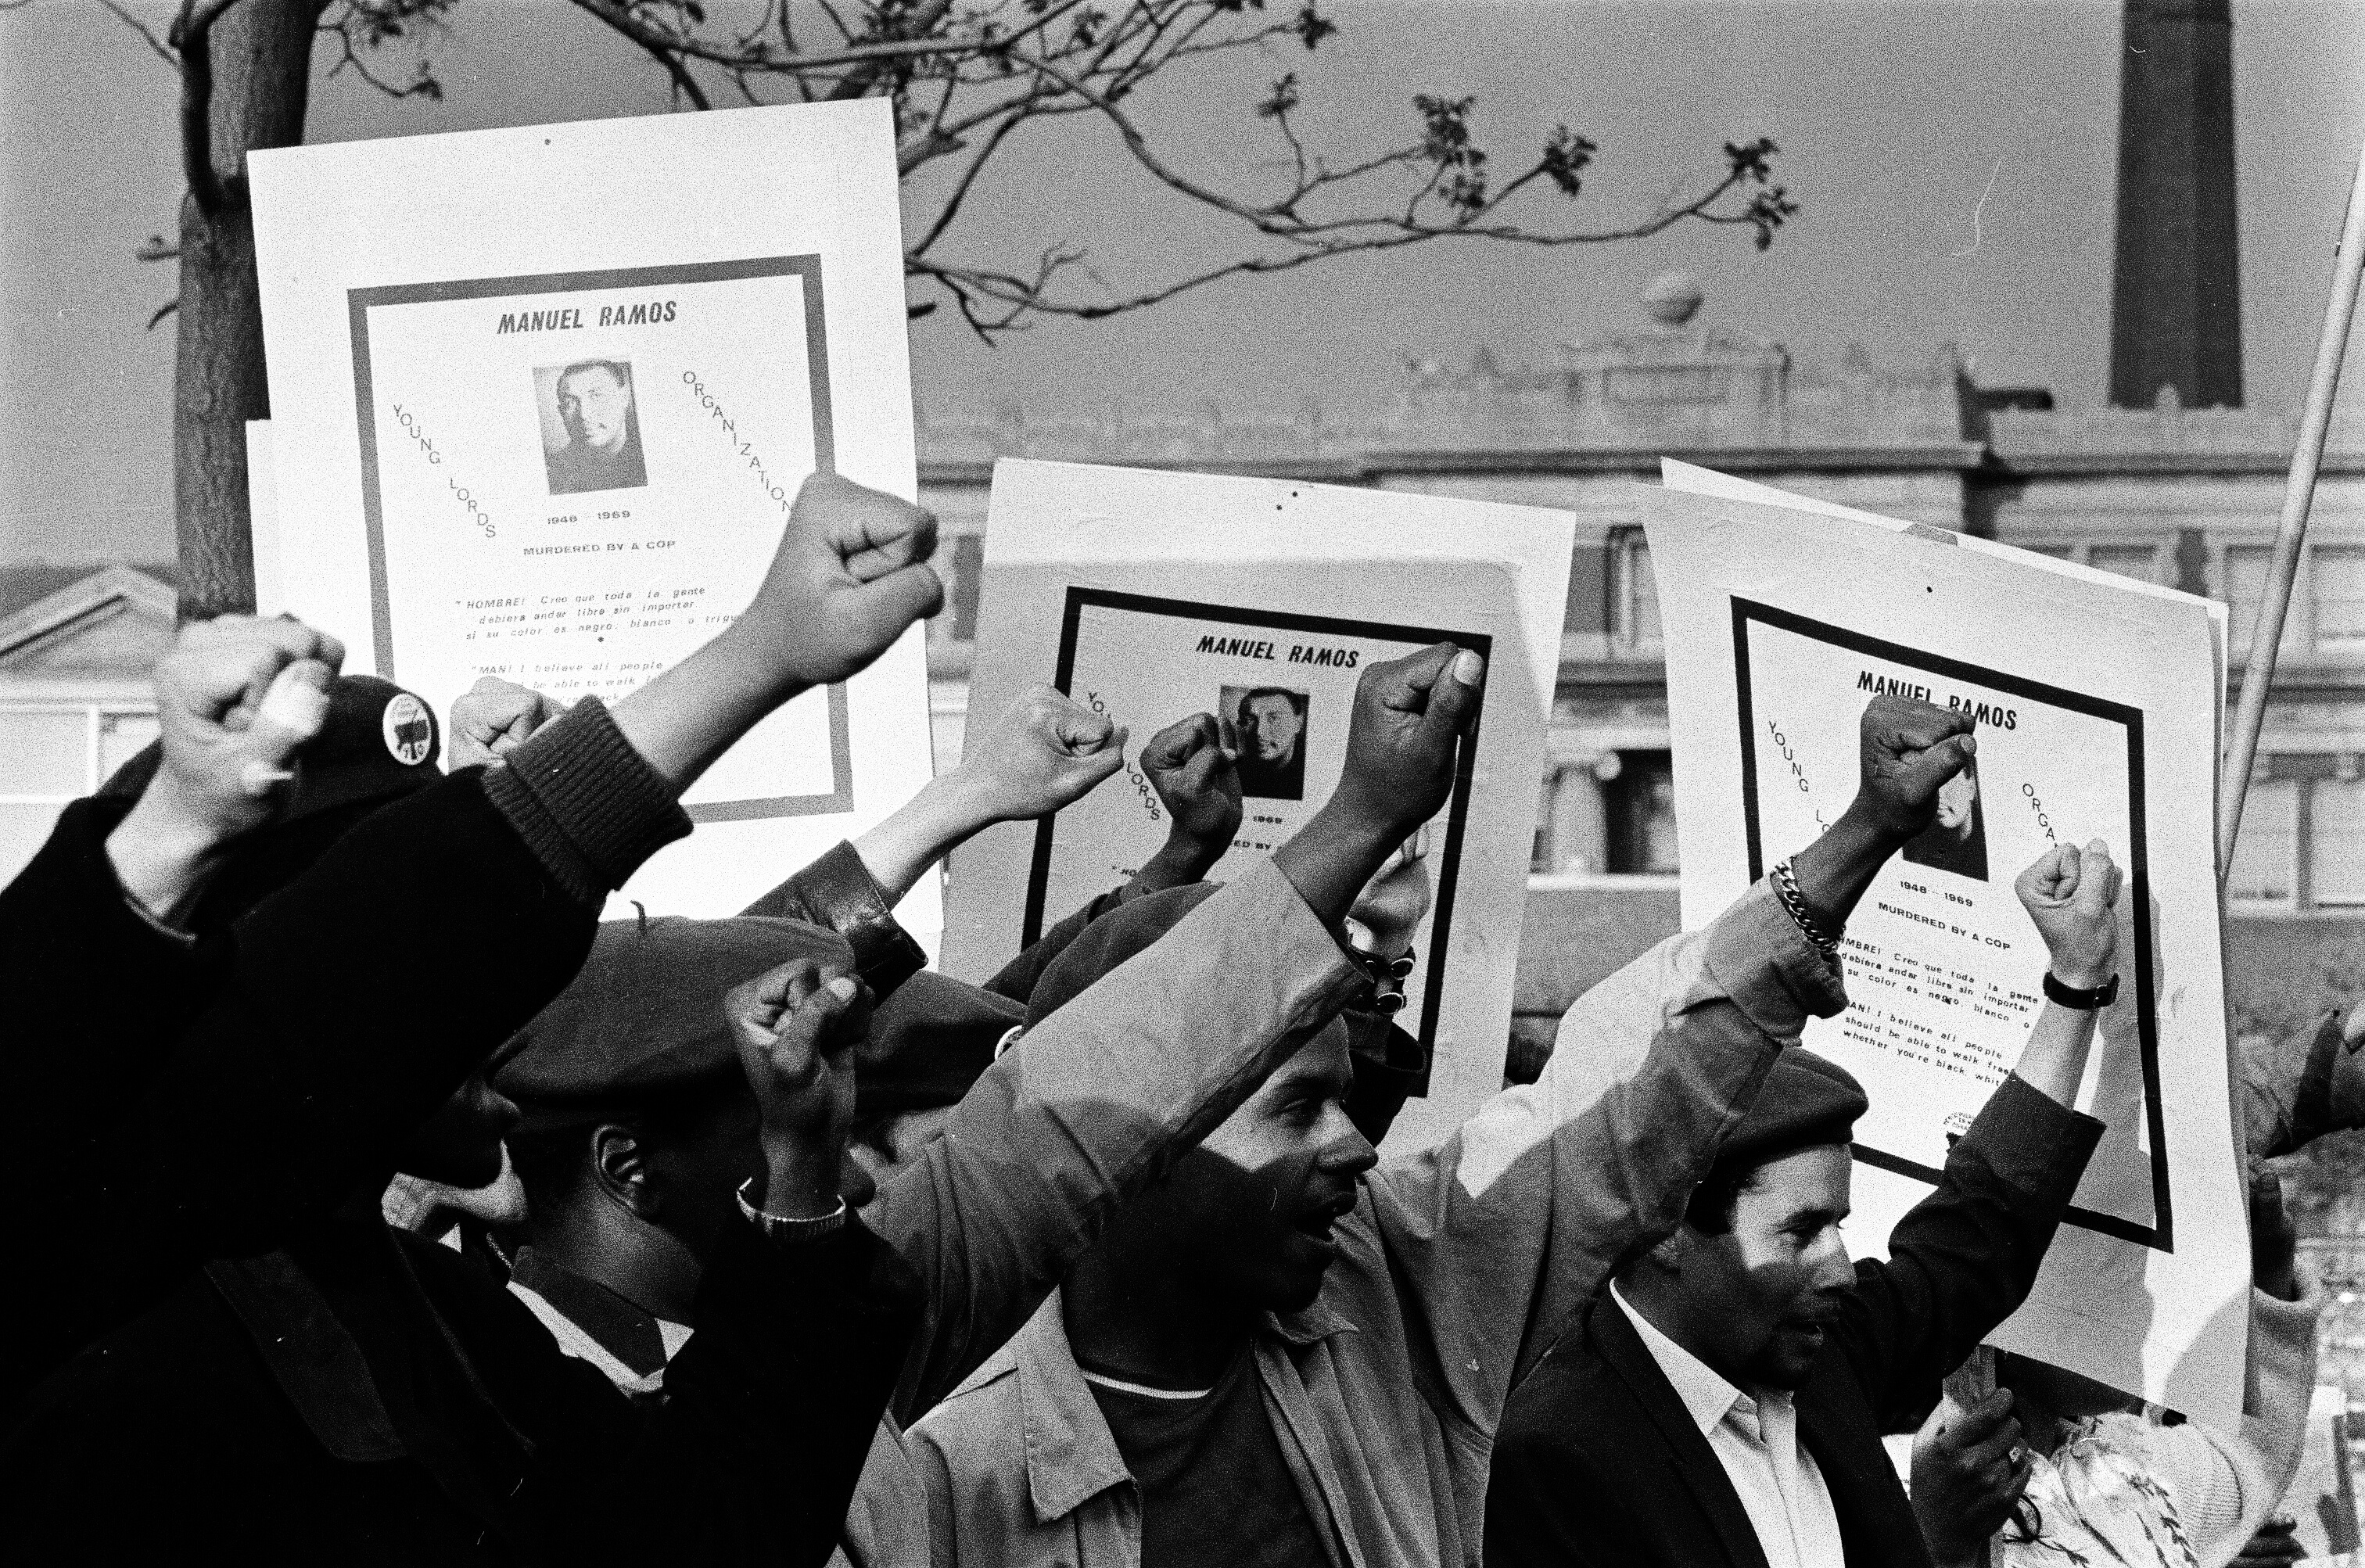 Members of the Young Lords, Black Panthers and Young Patriots march in protest over the fatal shooting of Manuel Ramos by an off-duty Chicago police officer.